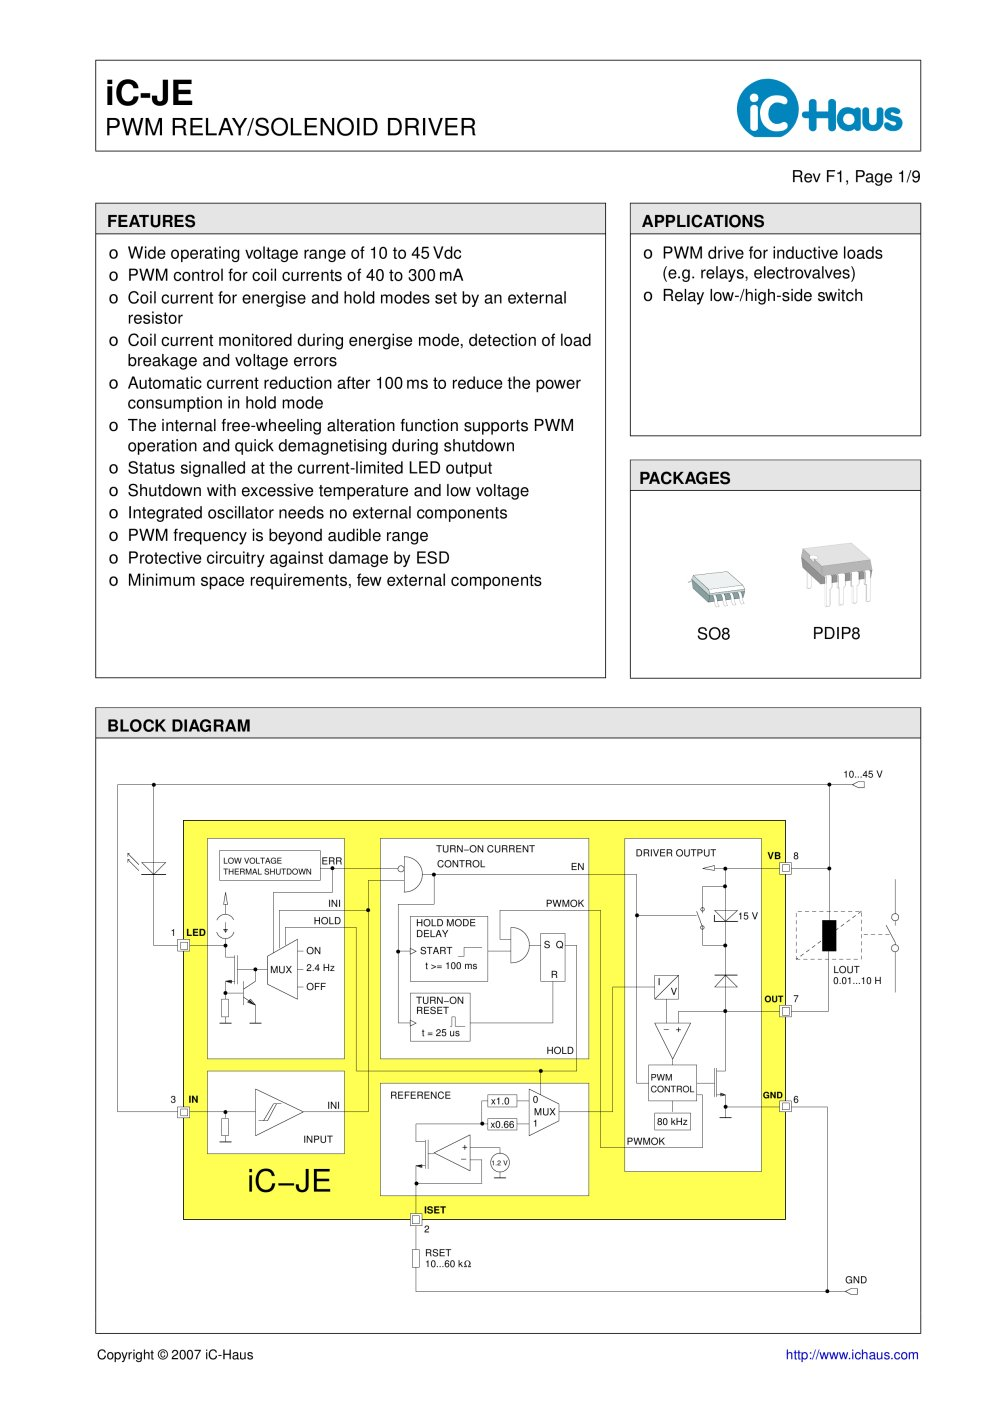 Ic Je Power Saving Pwm Relay Solenoid Driver Haus Pdf Basic Circuit 1 9 Pages